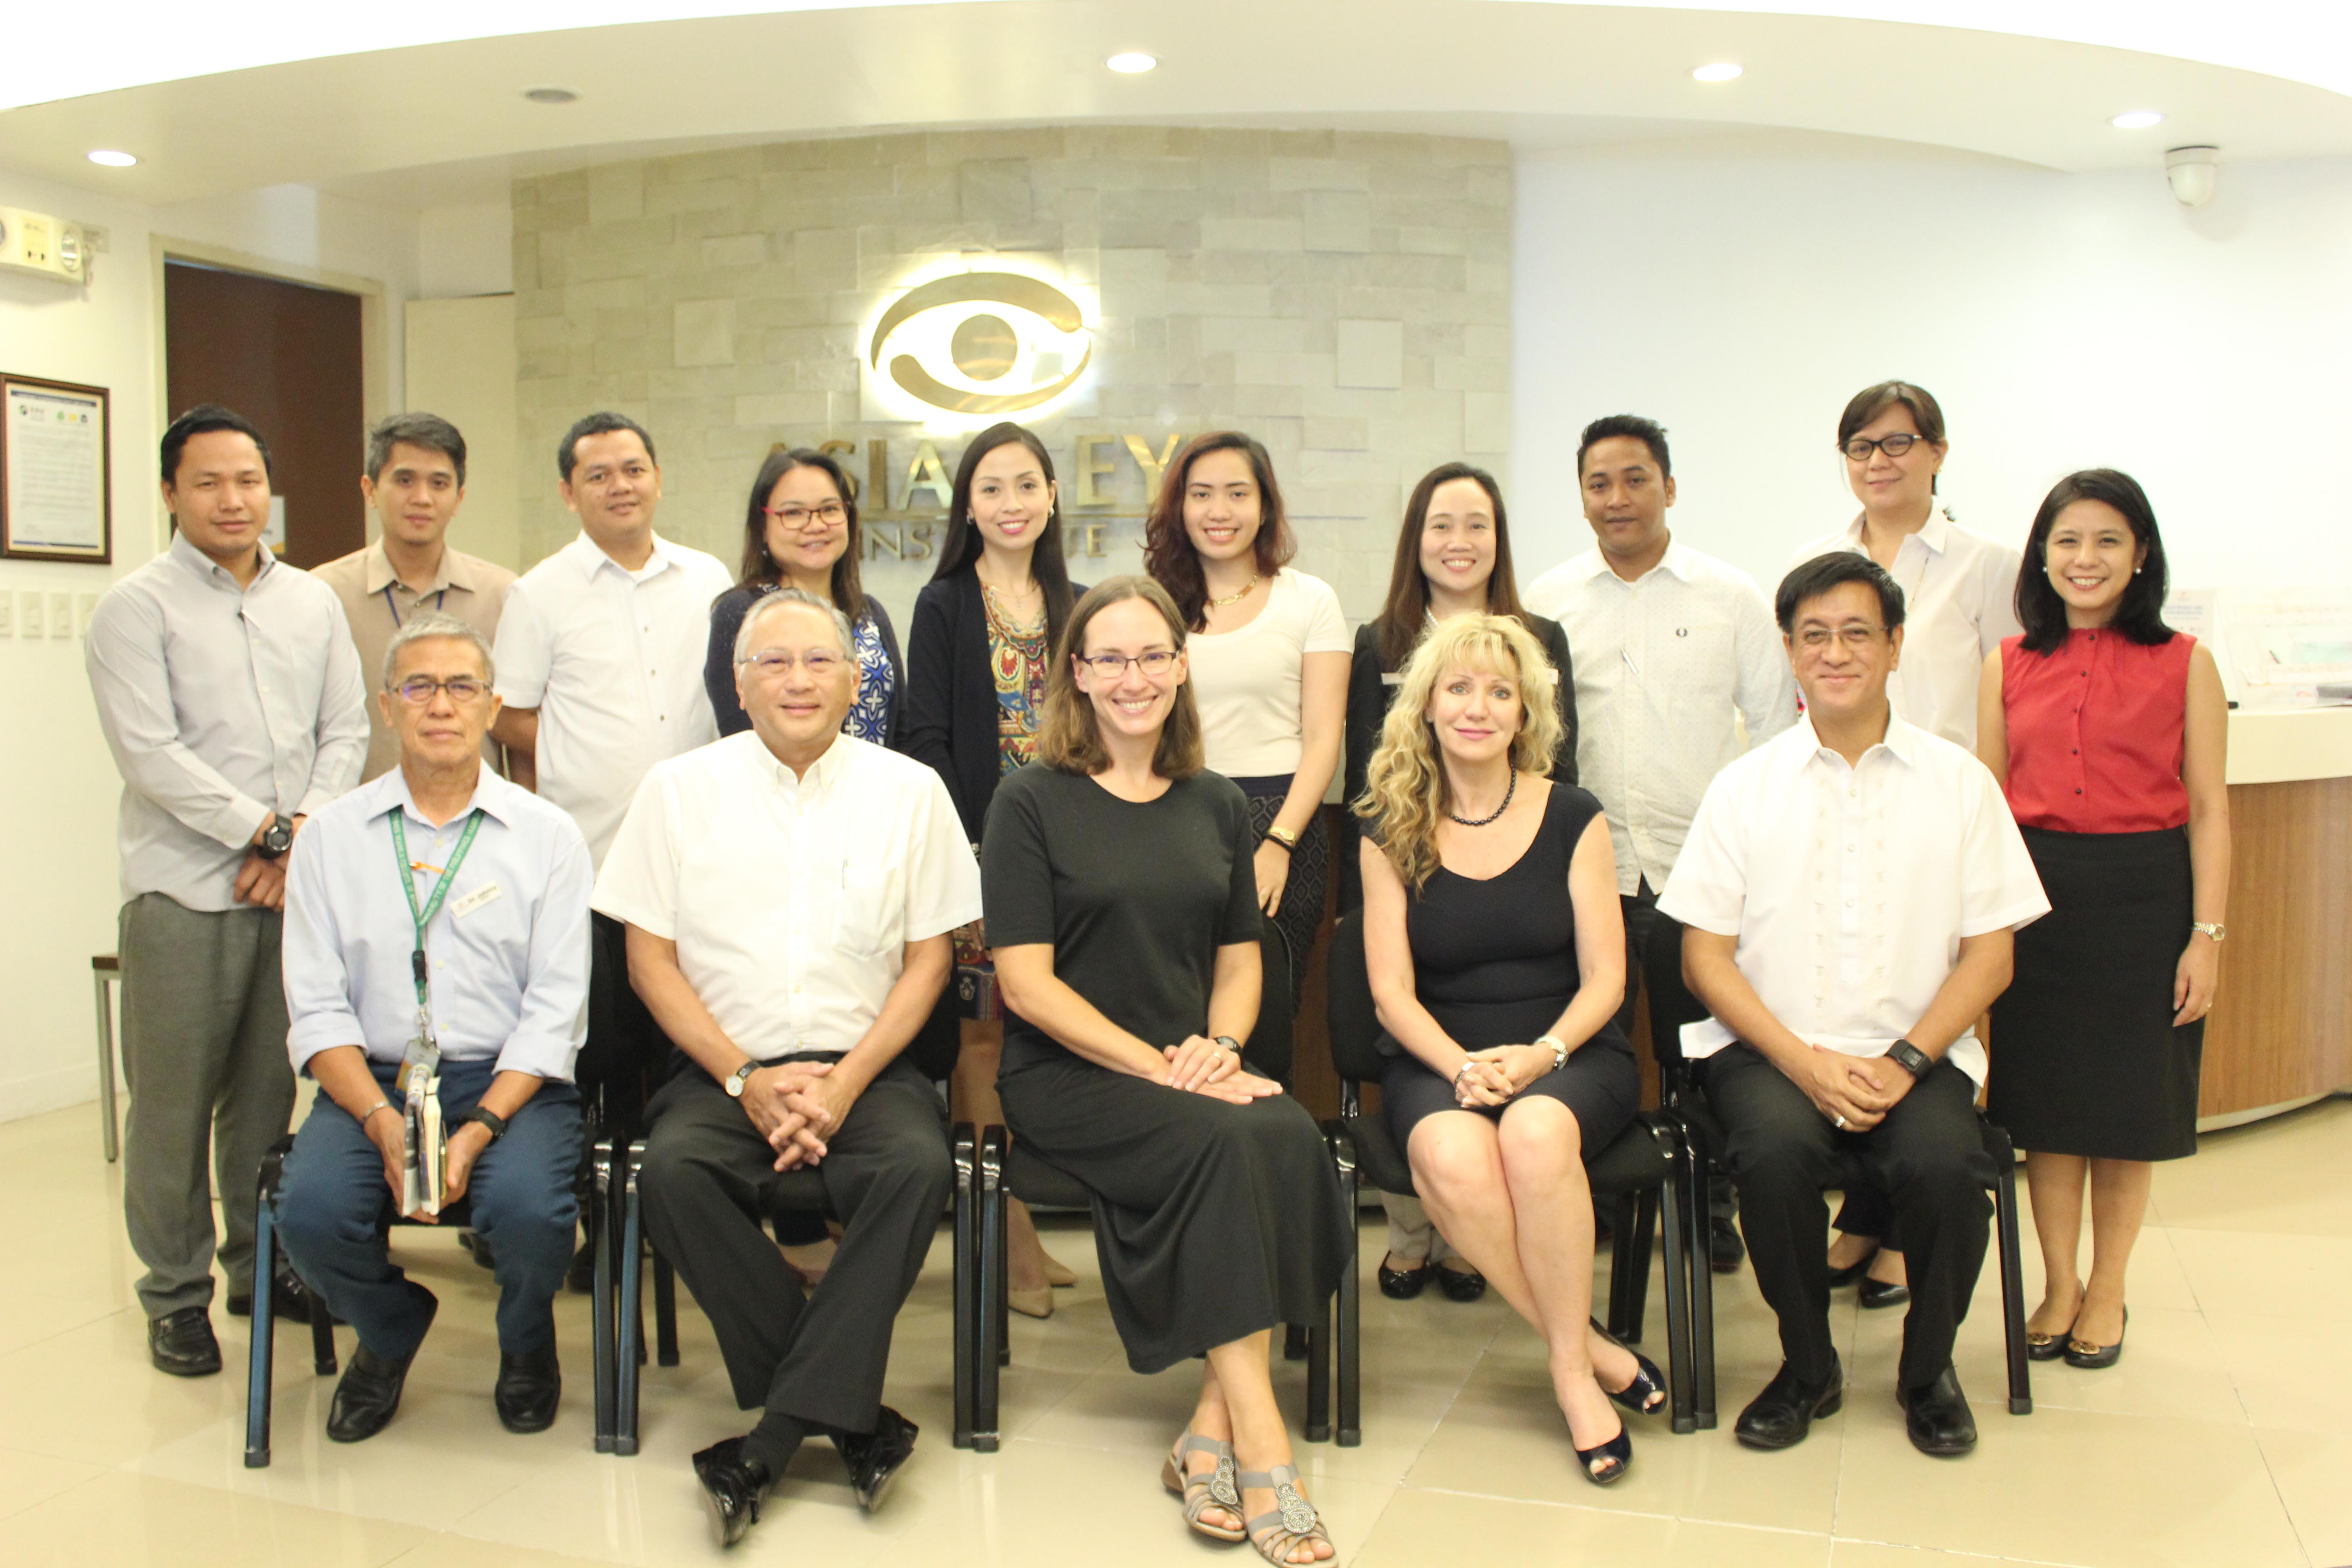 The Asian Eye team, led by president Benjamin Liboro (seated, 2nd from left) and VP Alwin Sta. Rosa (seated, rightmost), with Accreditation Canada auditors